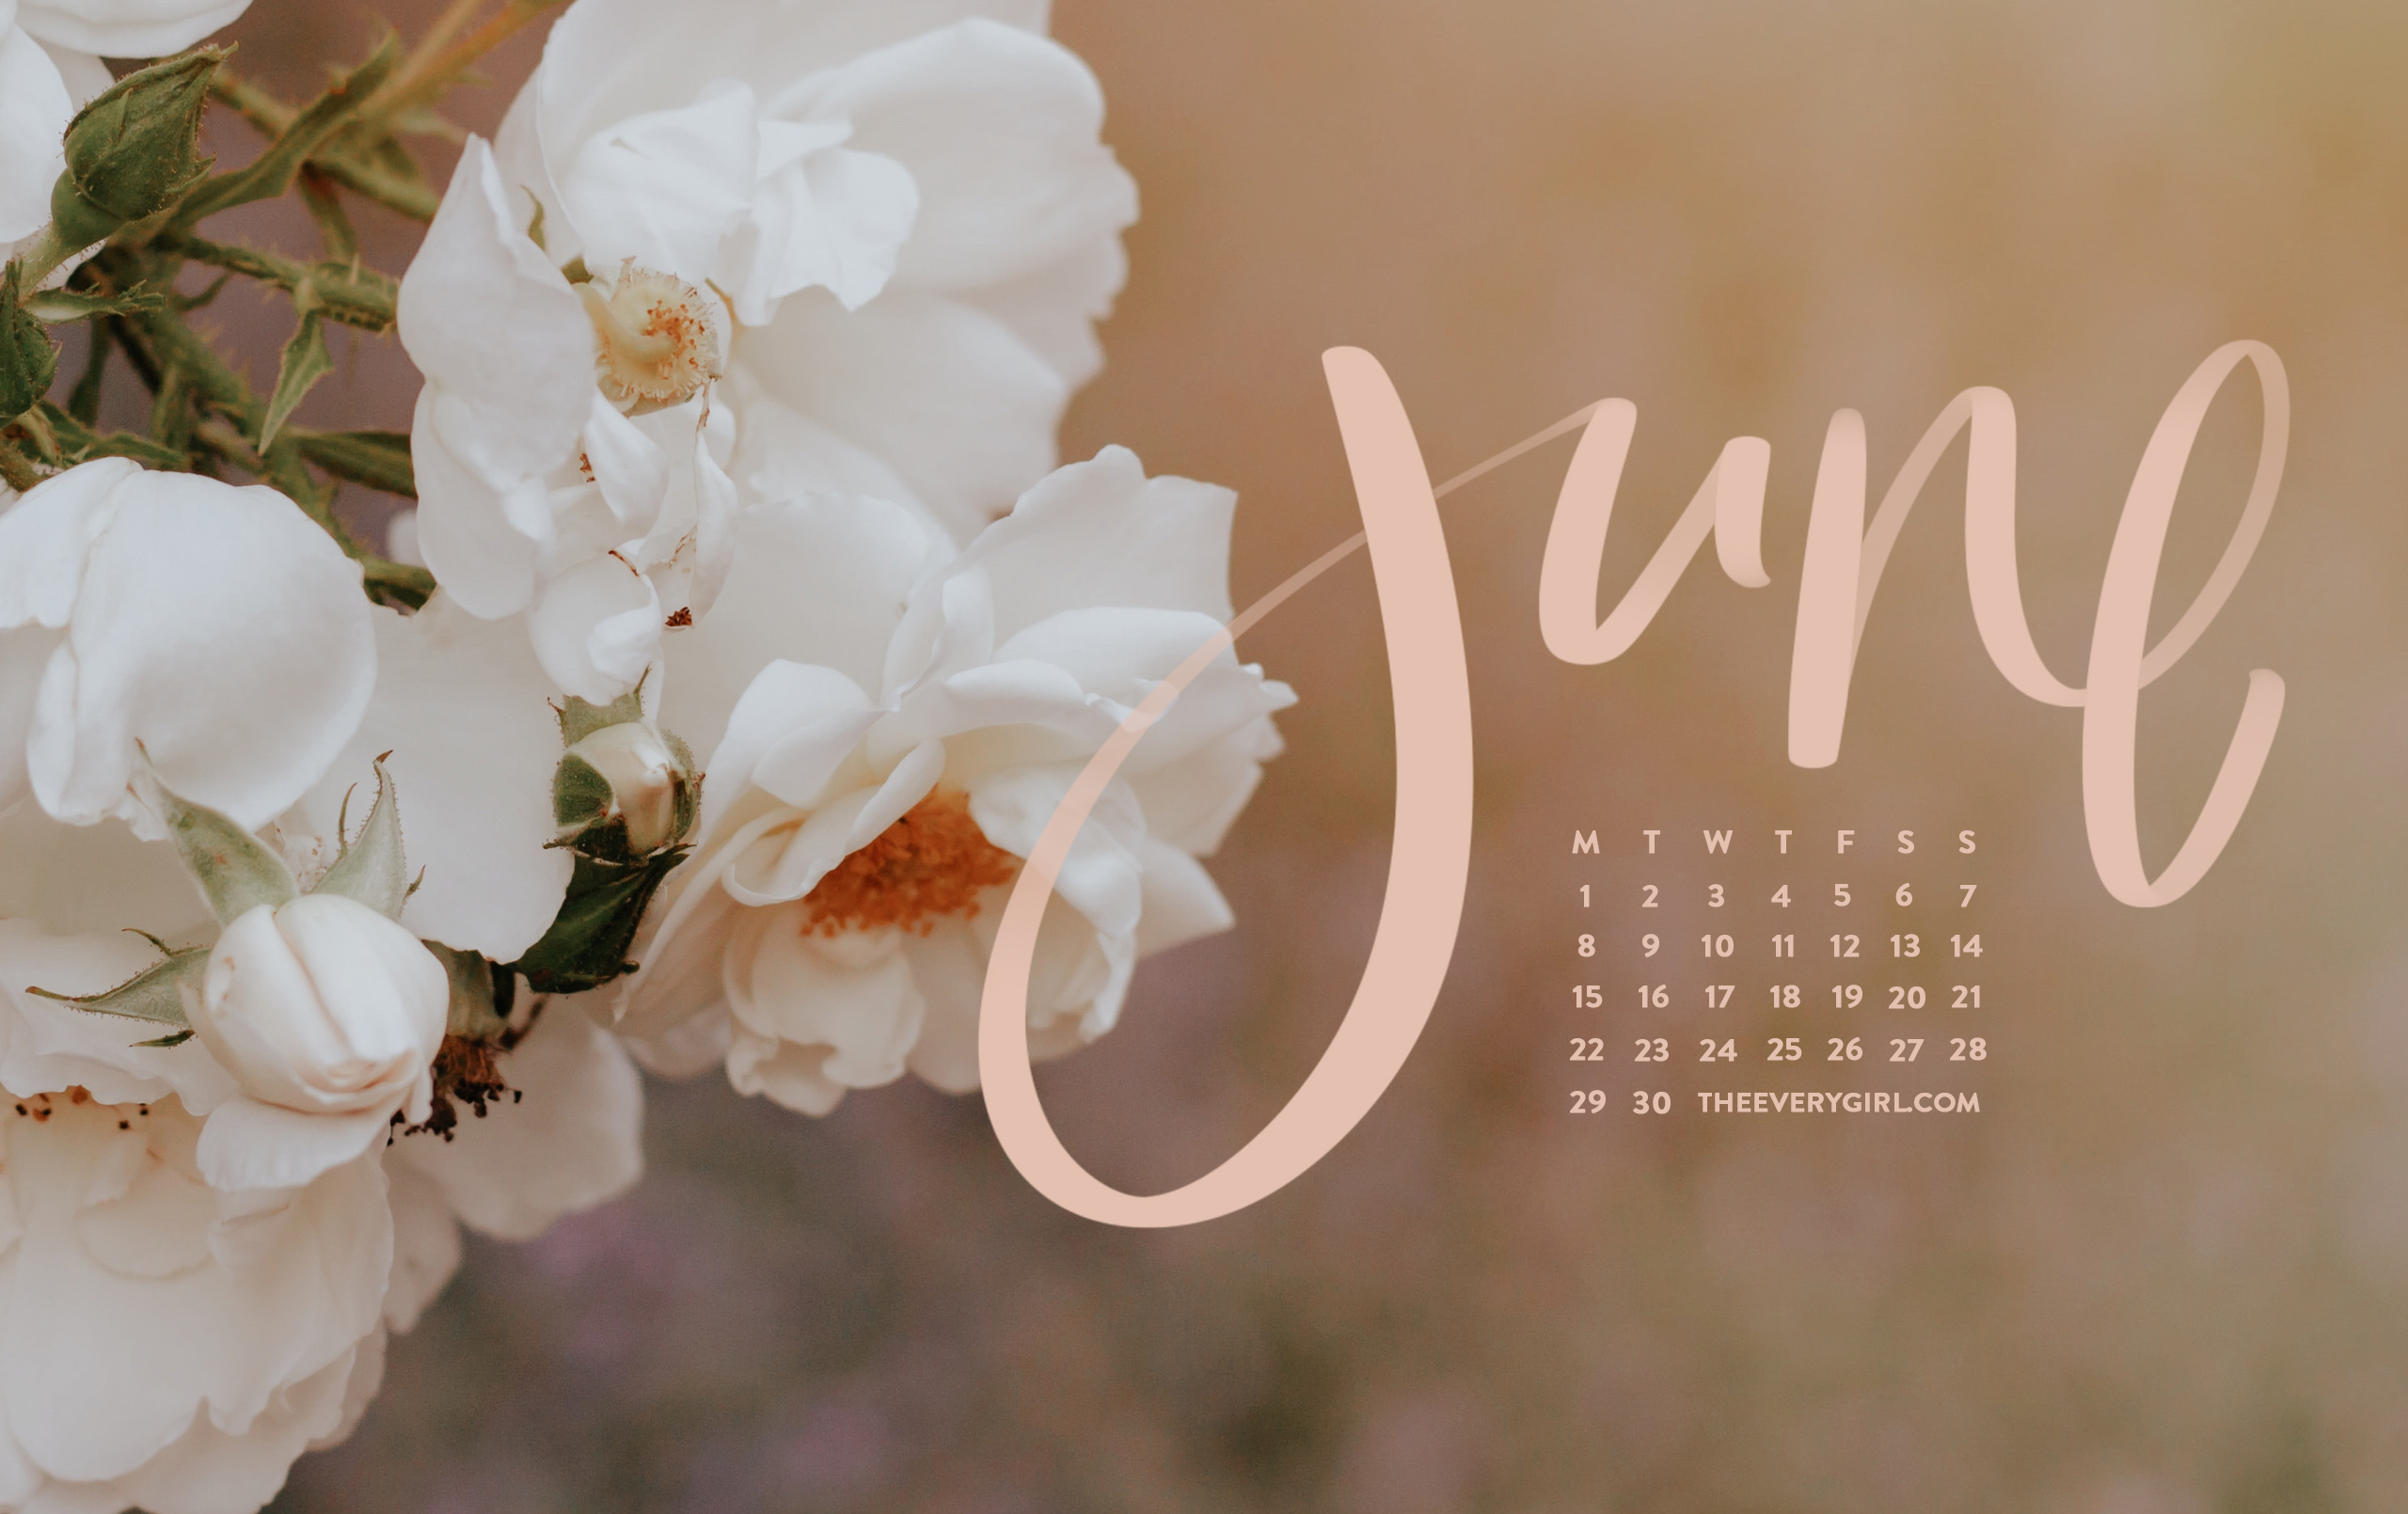 Free Downloadable Tech Backgrounds For June 2020 The Everygirl